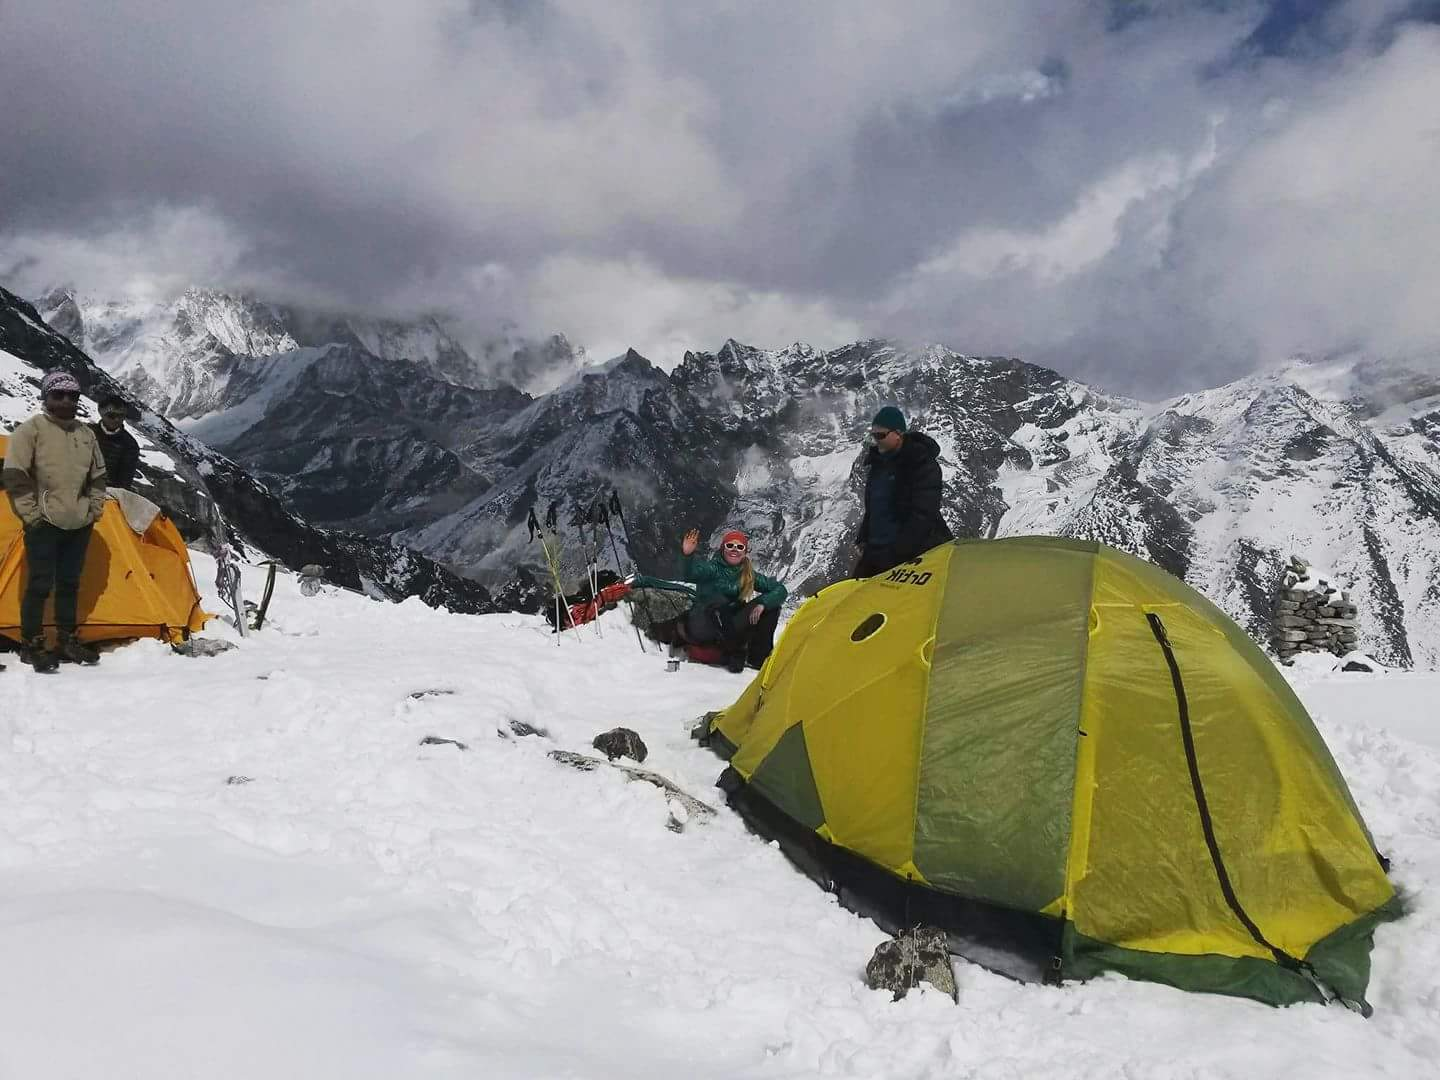 a group of himalayan trekkers with their tent at the top of snow-capped mountain